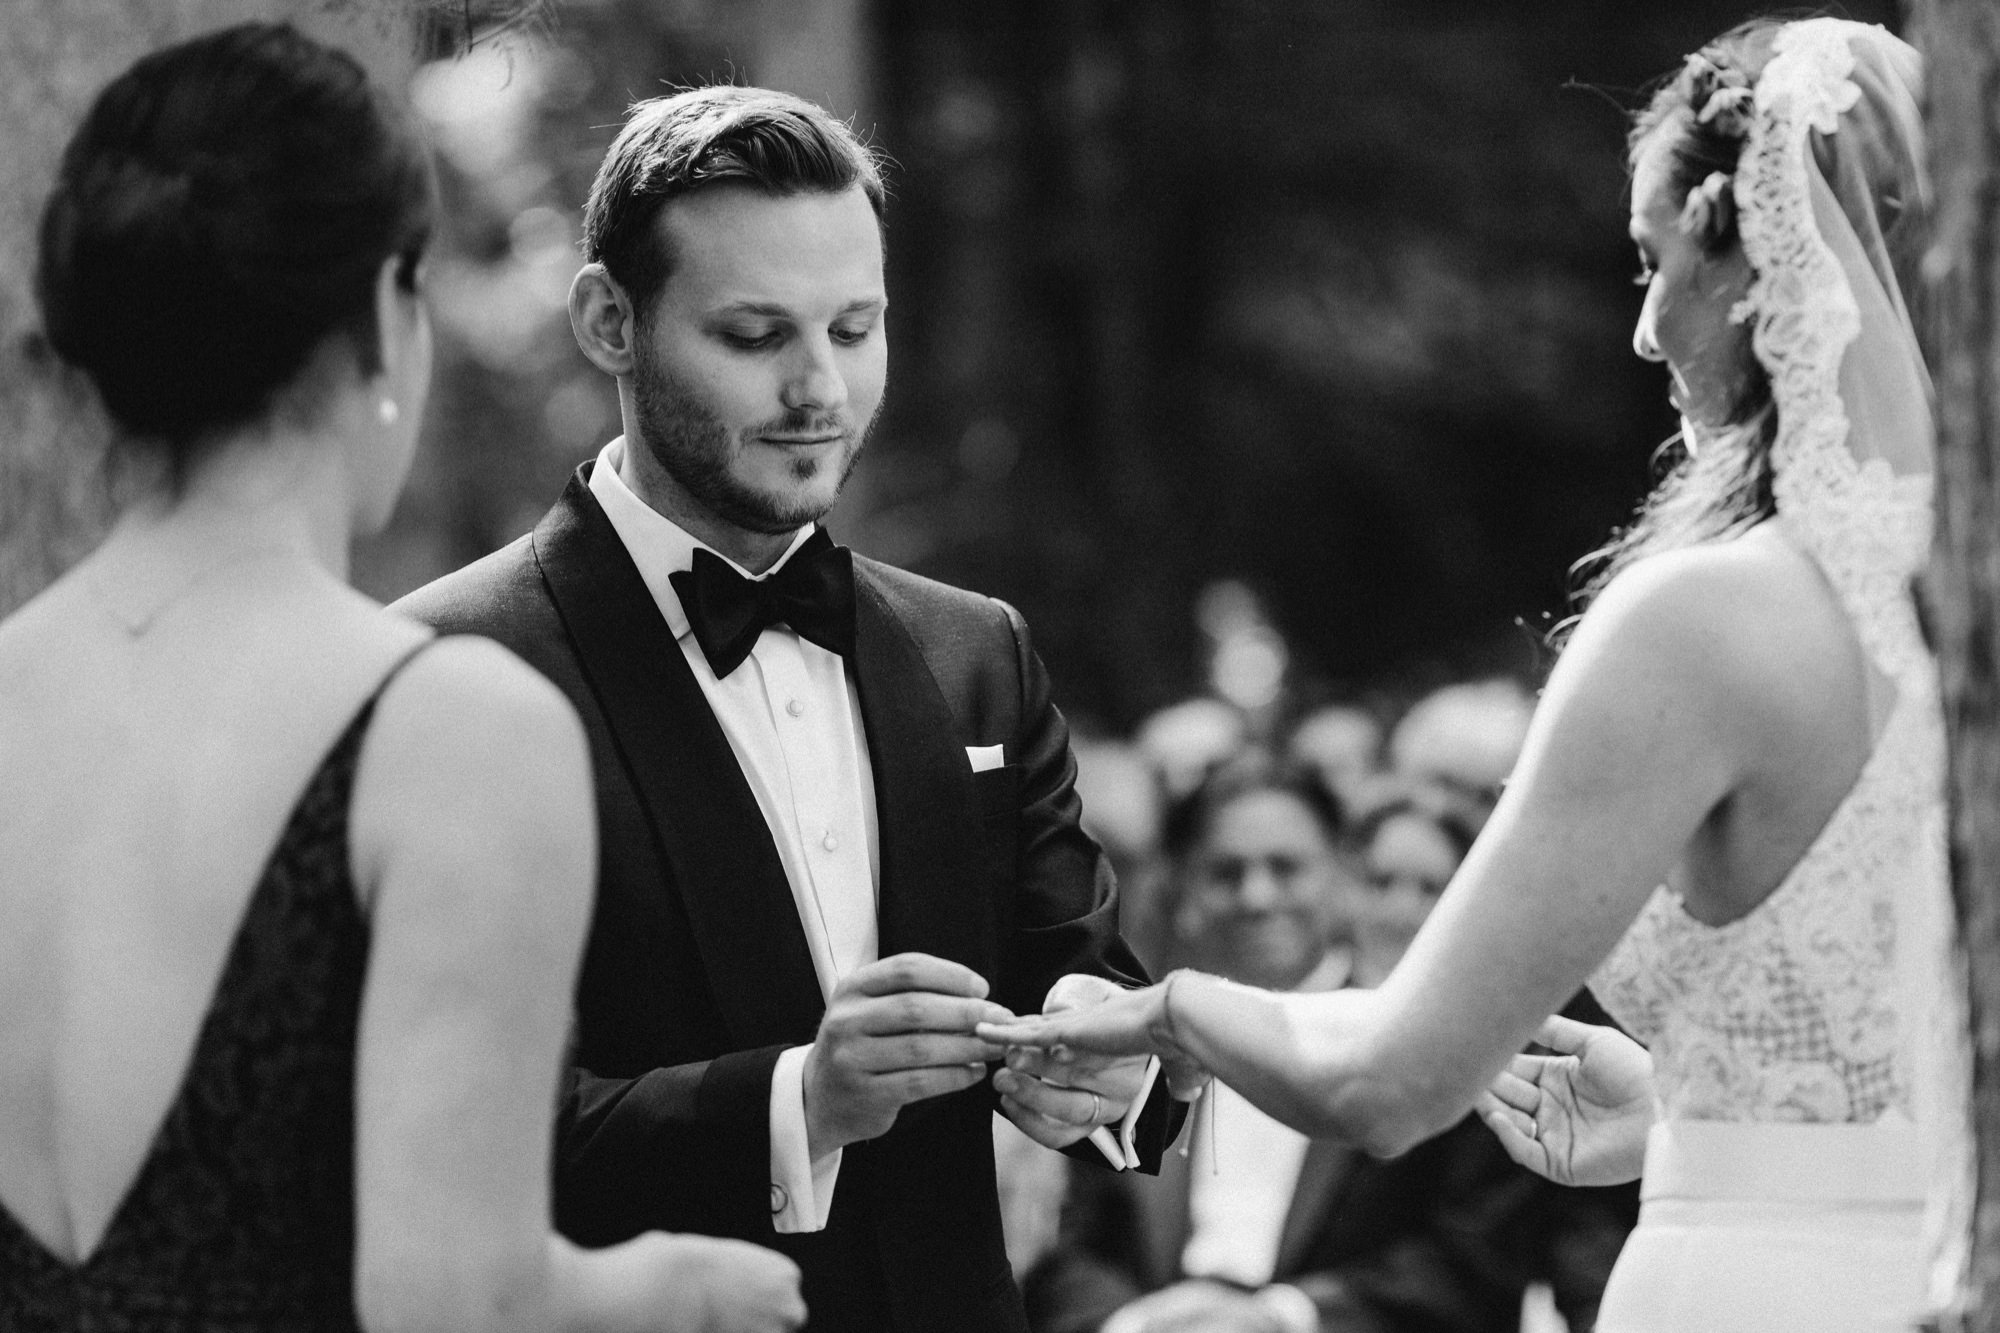 Ring exchange during wedding ceremony at the Pine Grove location at Roxbury Barn Estate in the Catskills New York